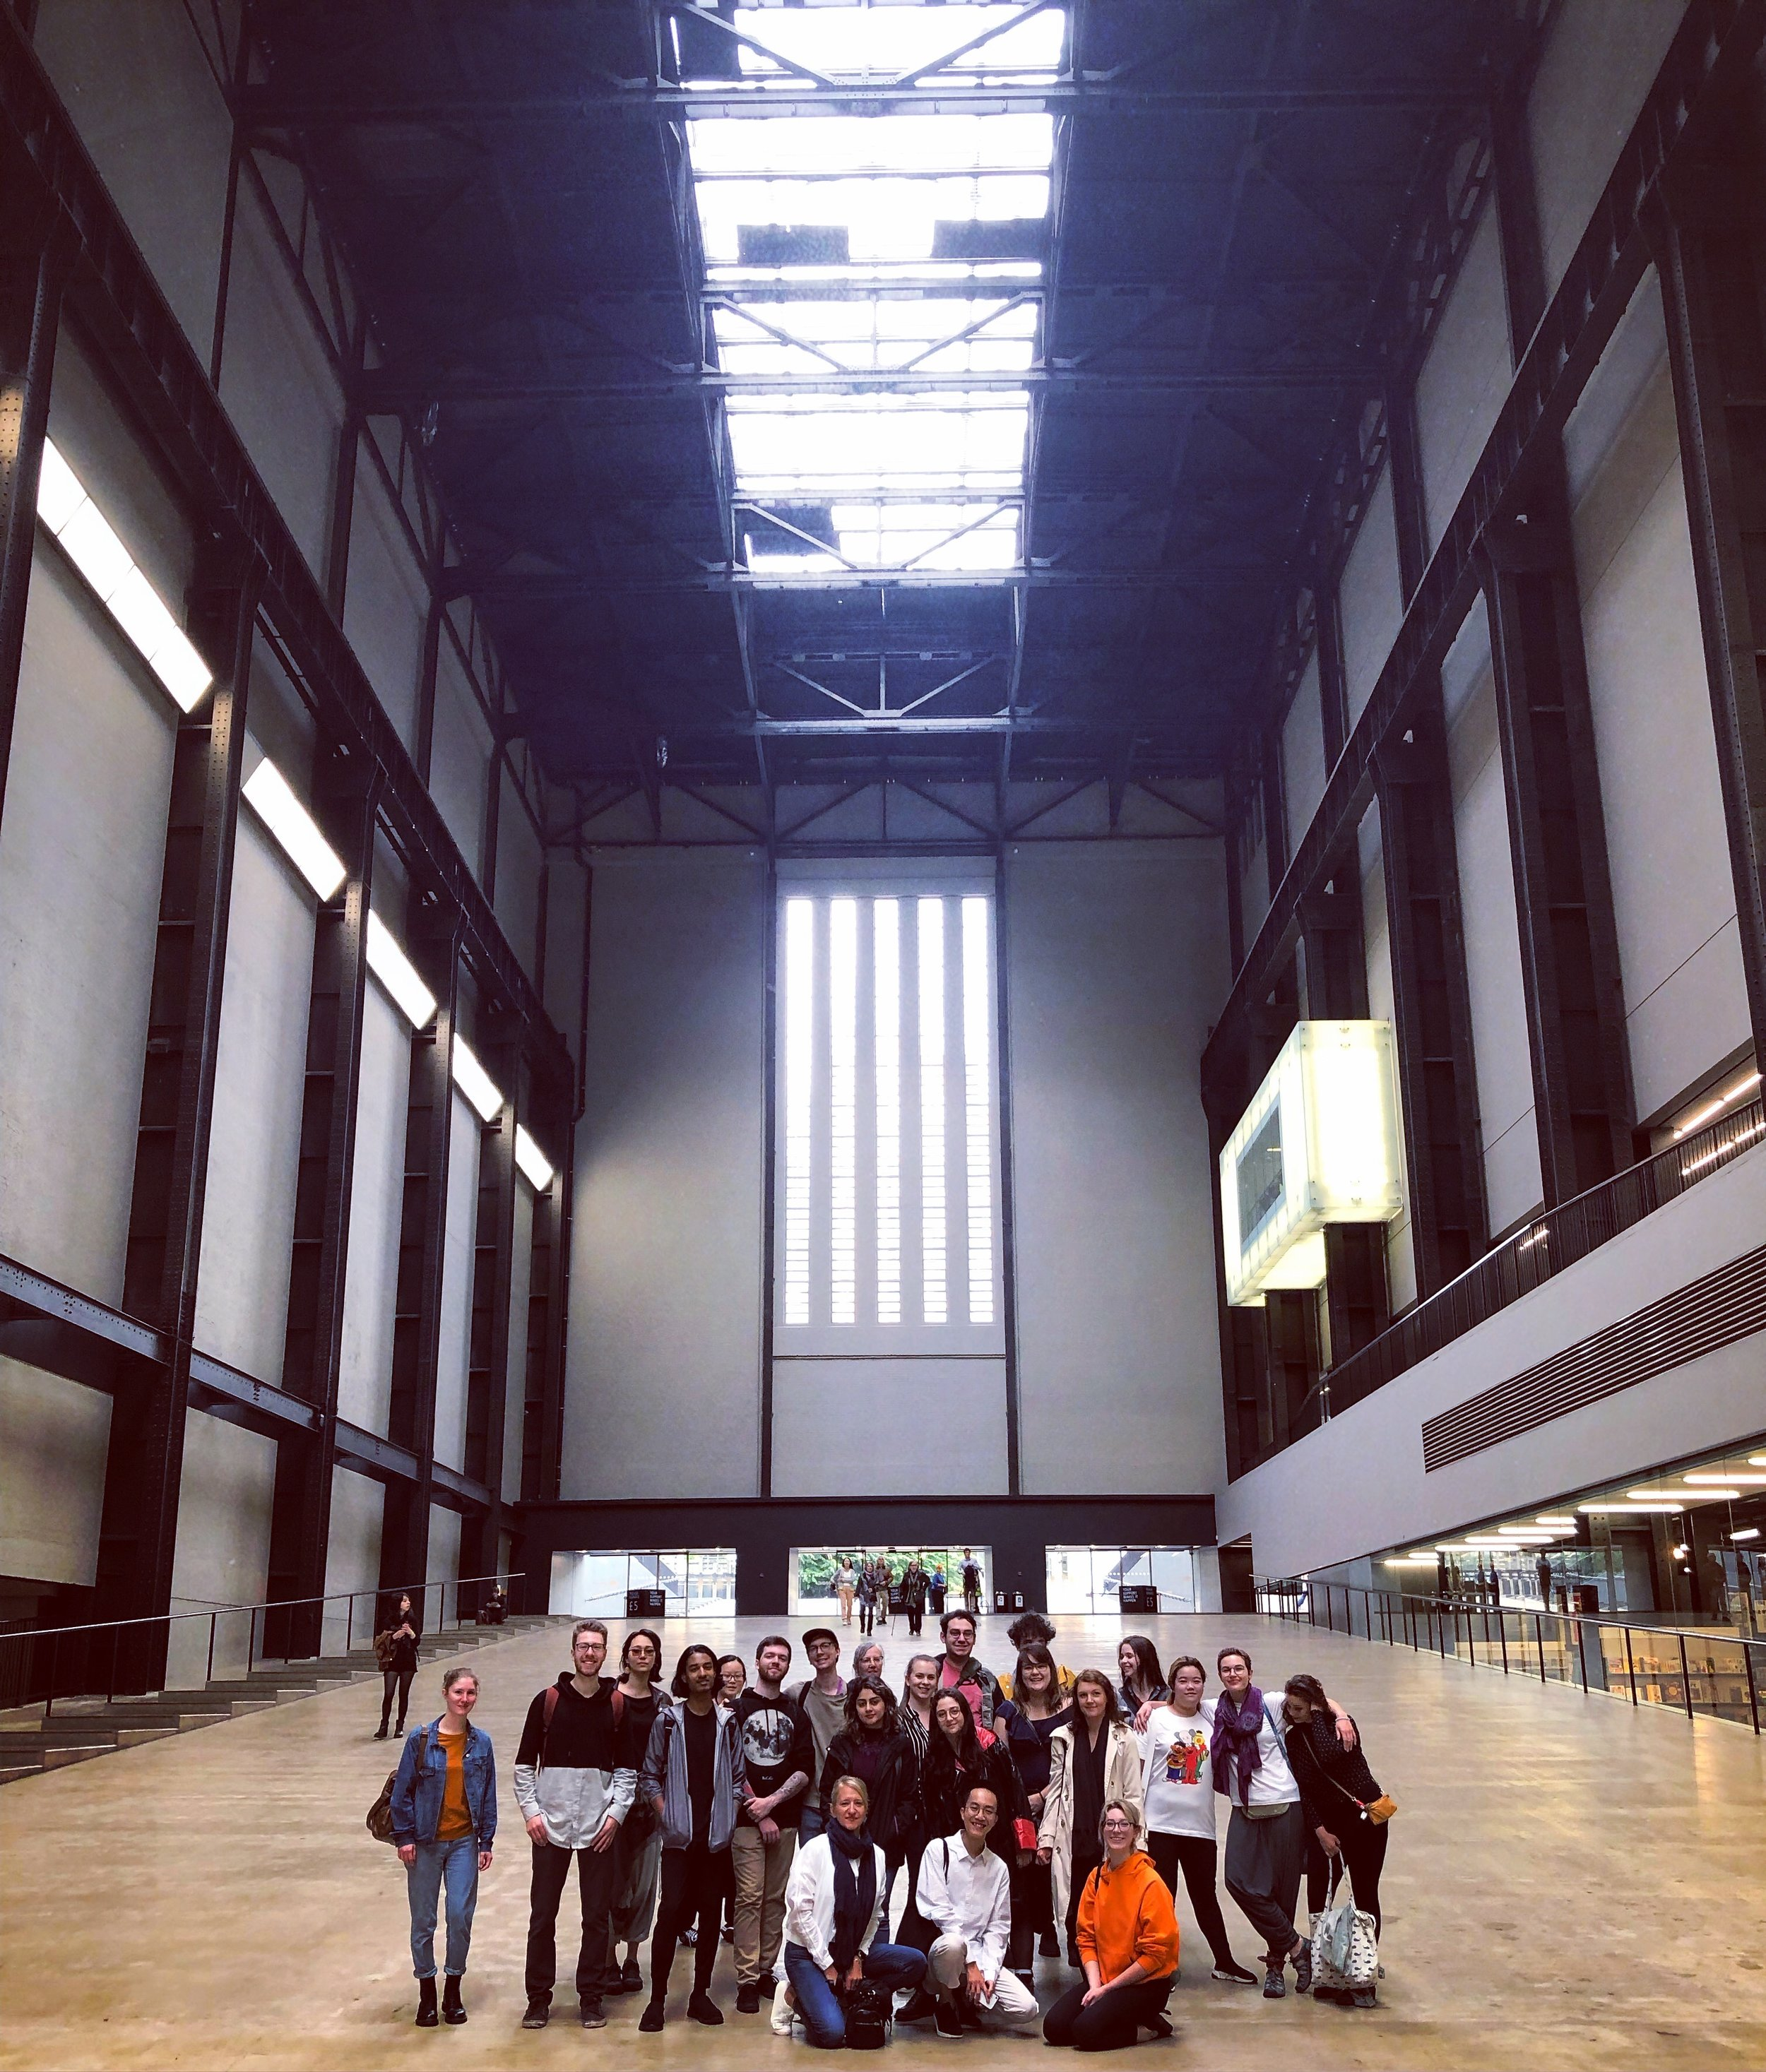 Group photo taken in the big Turbine Hall at the Tate Modern.